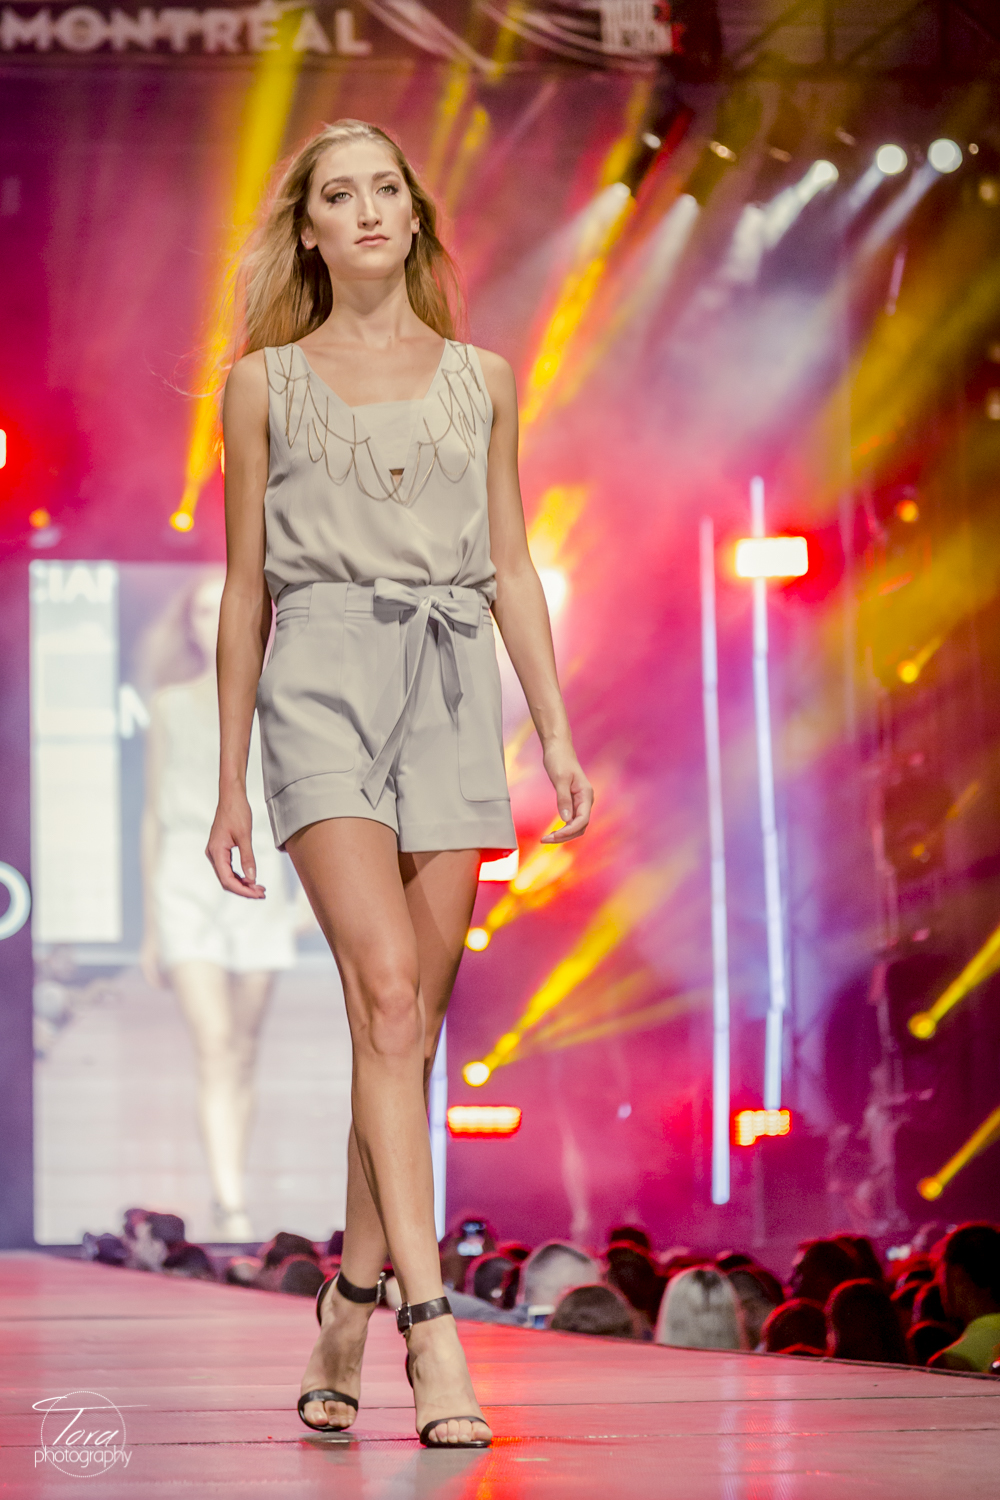 Tora Photography - Festival Mode et Design Montreal -208.jpg